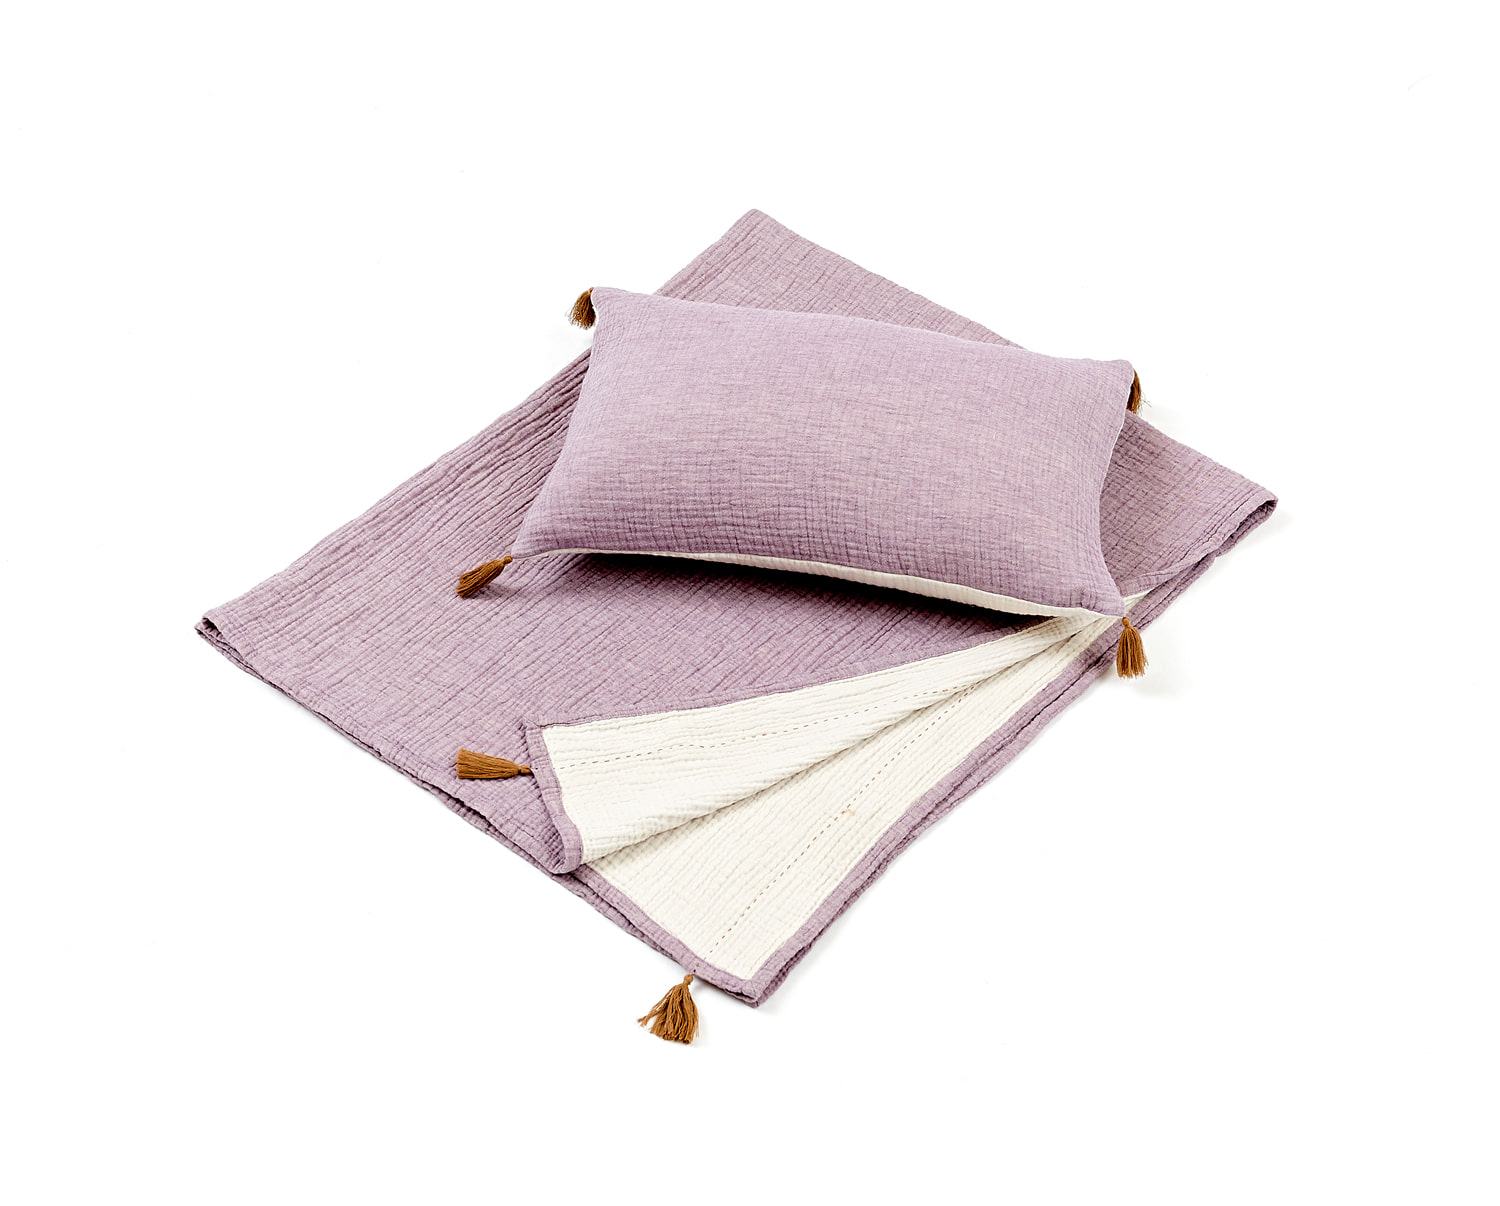 BICOLOR GAUZE BLANKET - PURPLE / IVORY